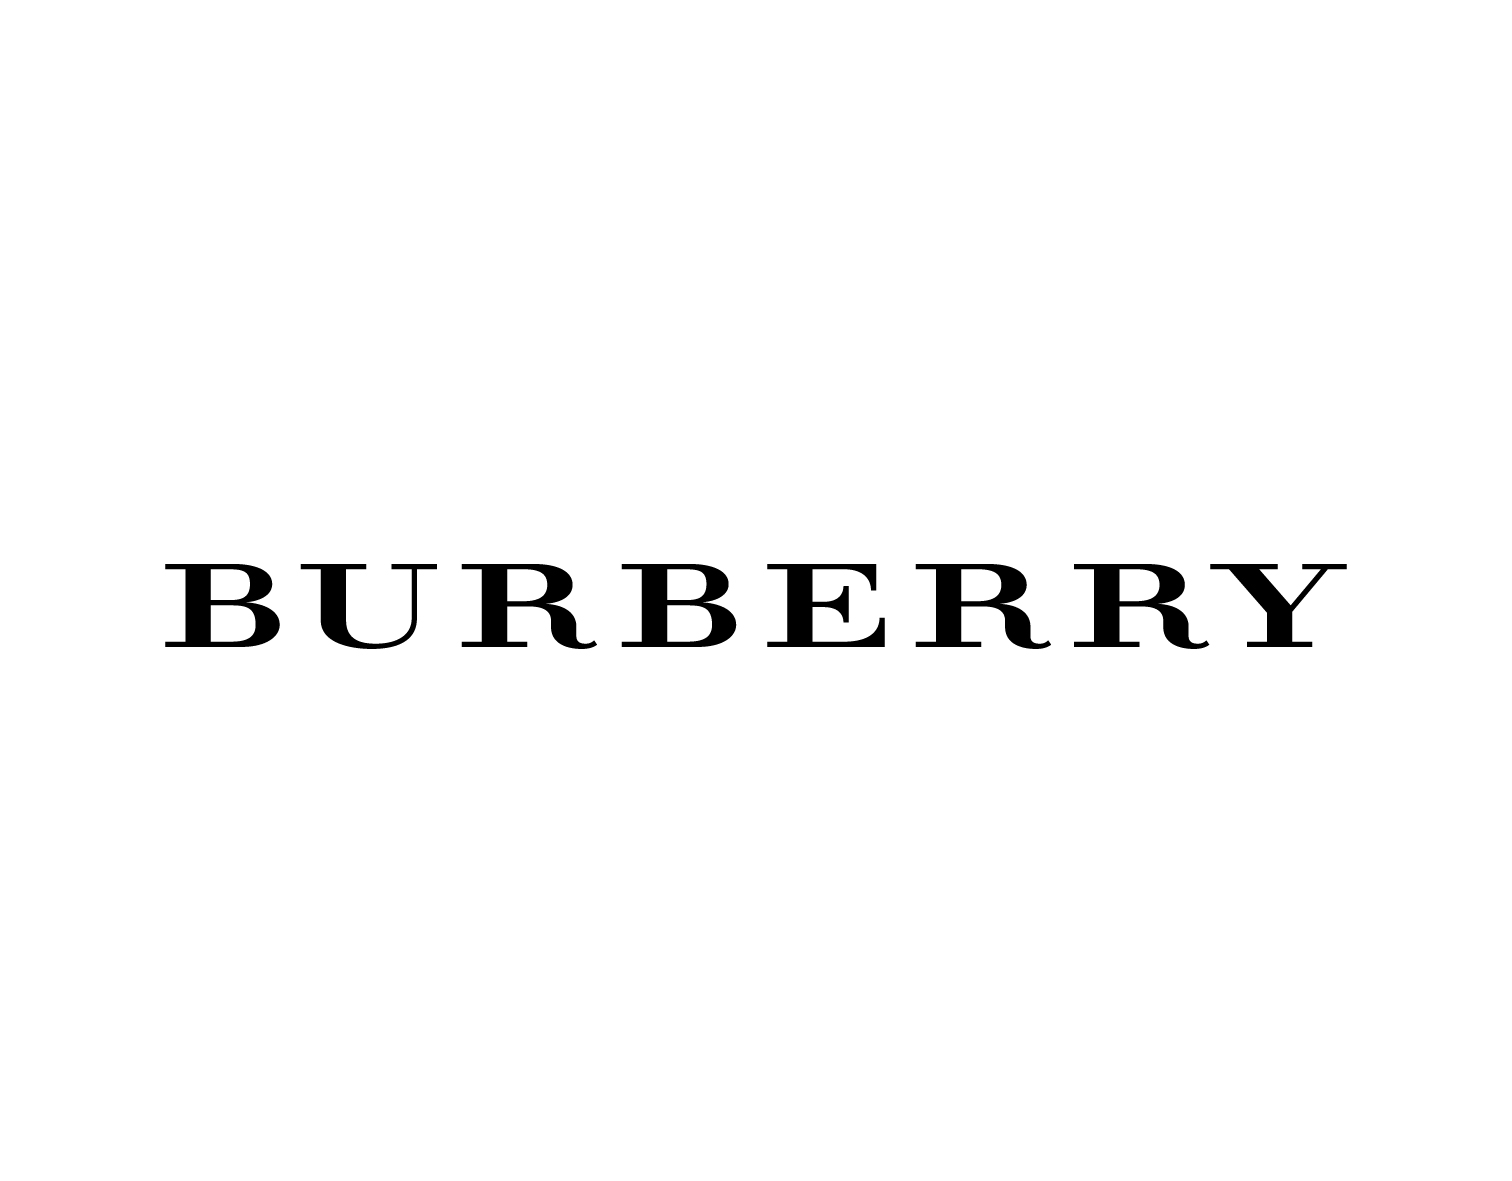 549d1e7c90f8 BURBERRY Restaurant and Shop Search